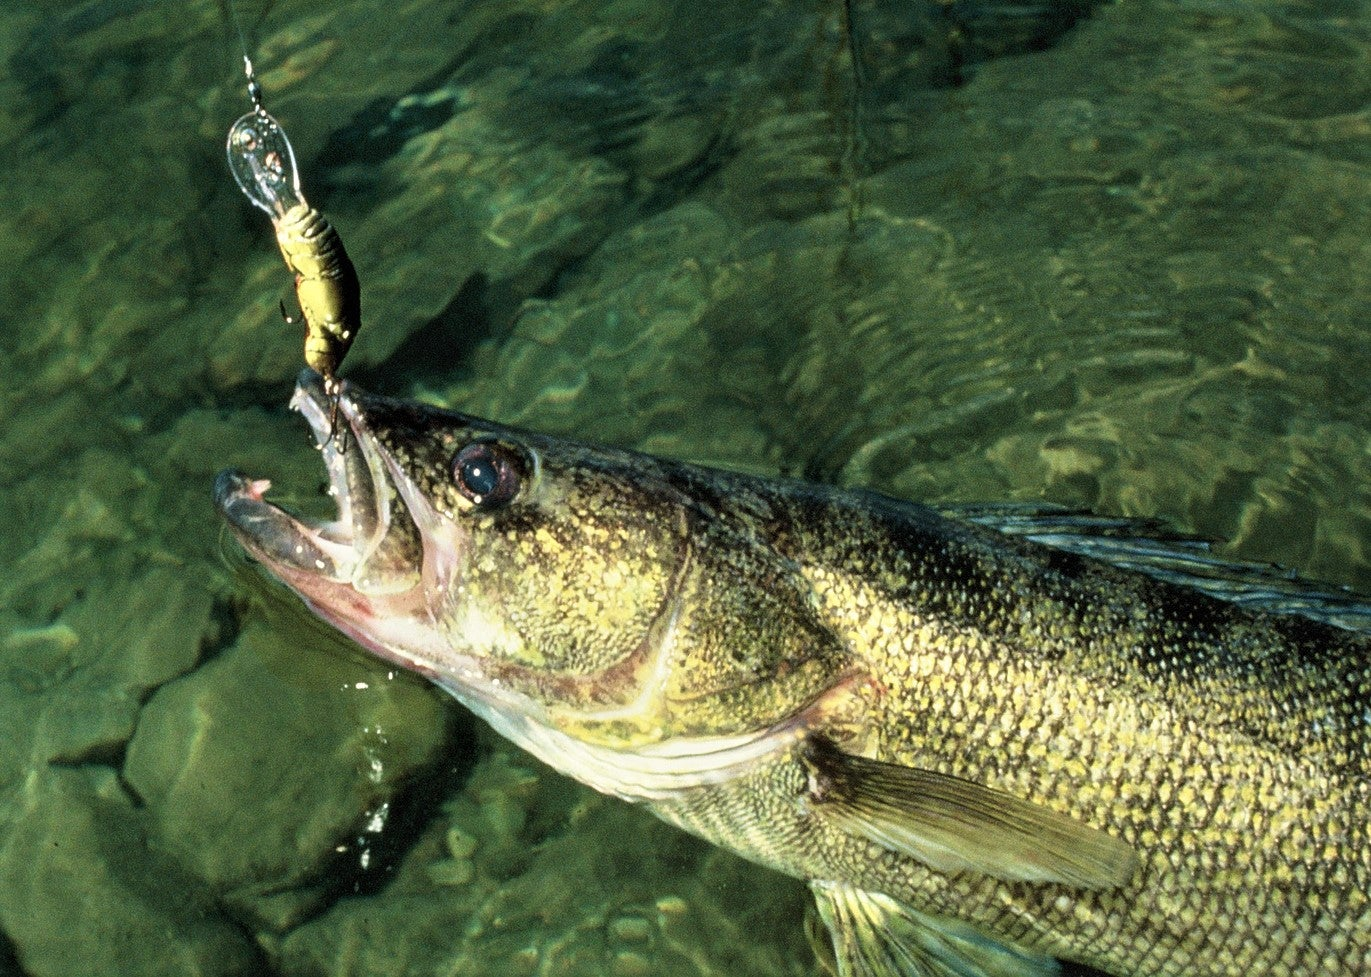 Spring Walleye Harvest to Be Allowed on Minnesota's Mille Lacs Lake for Two Weeks